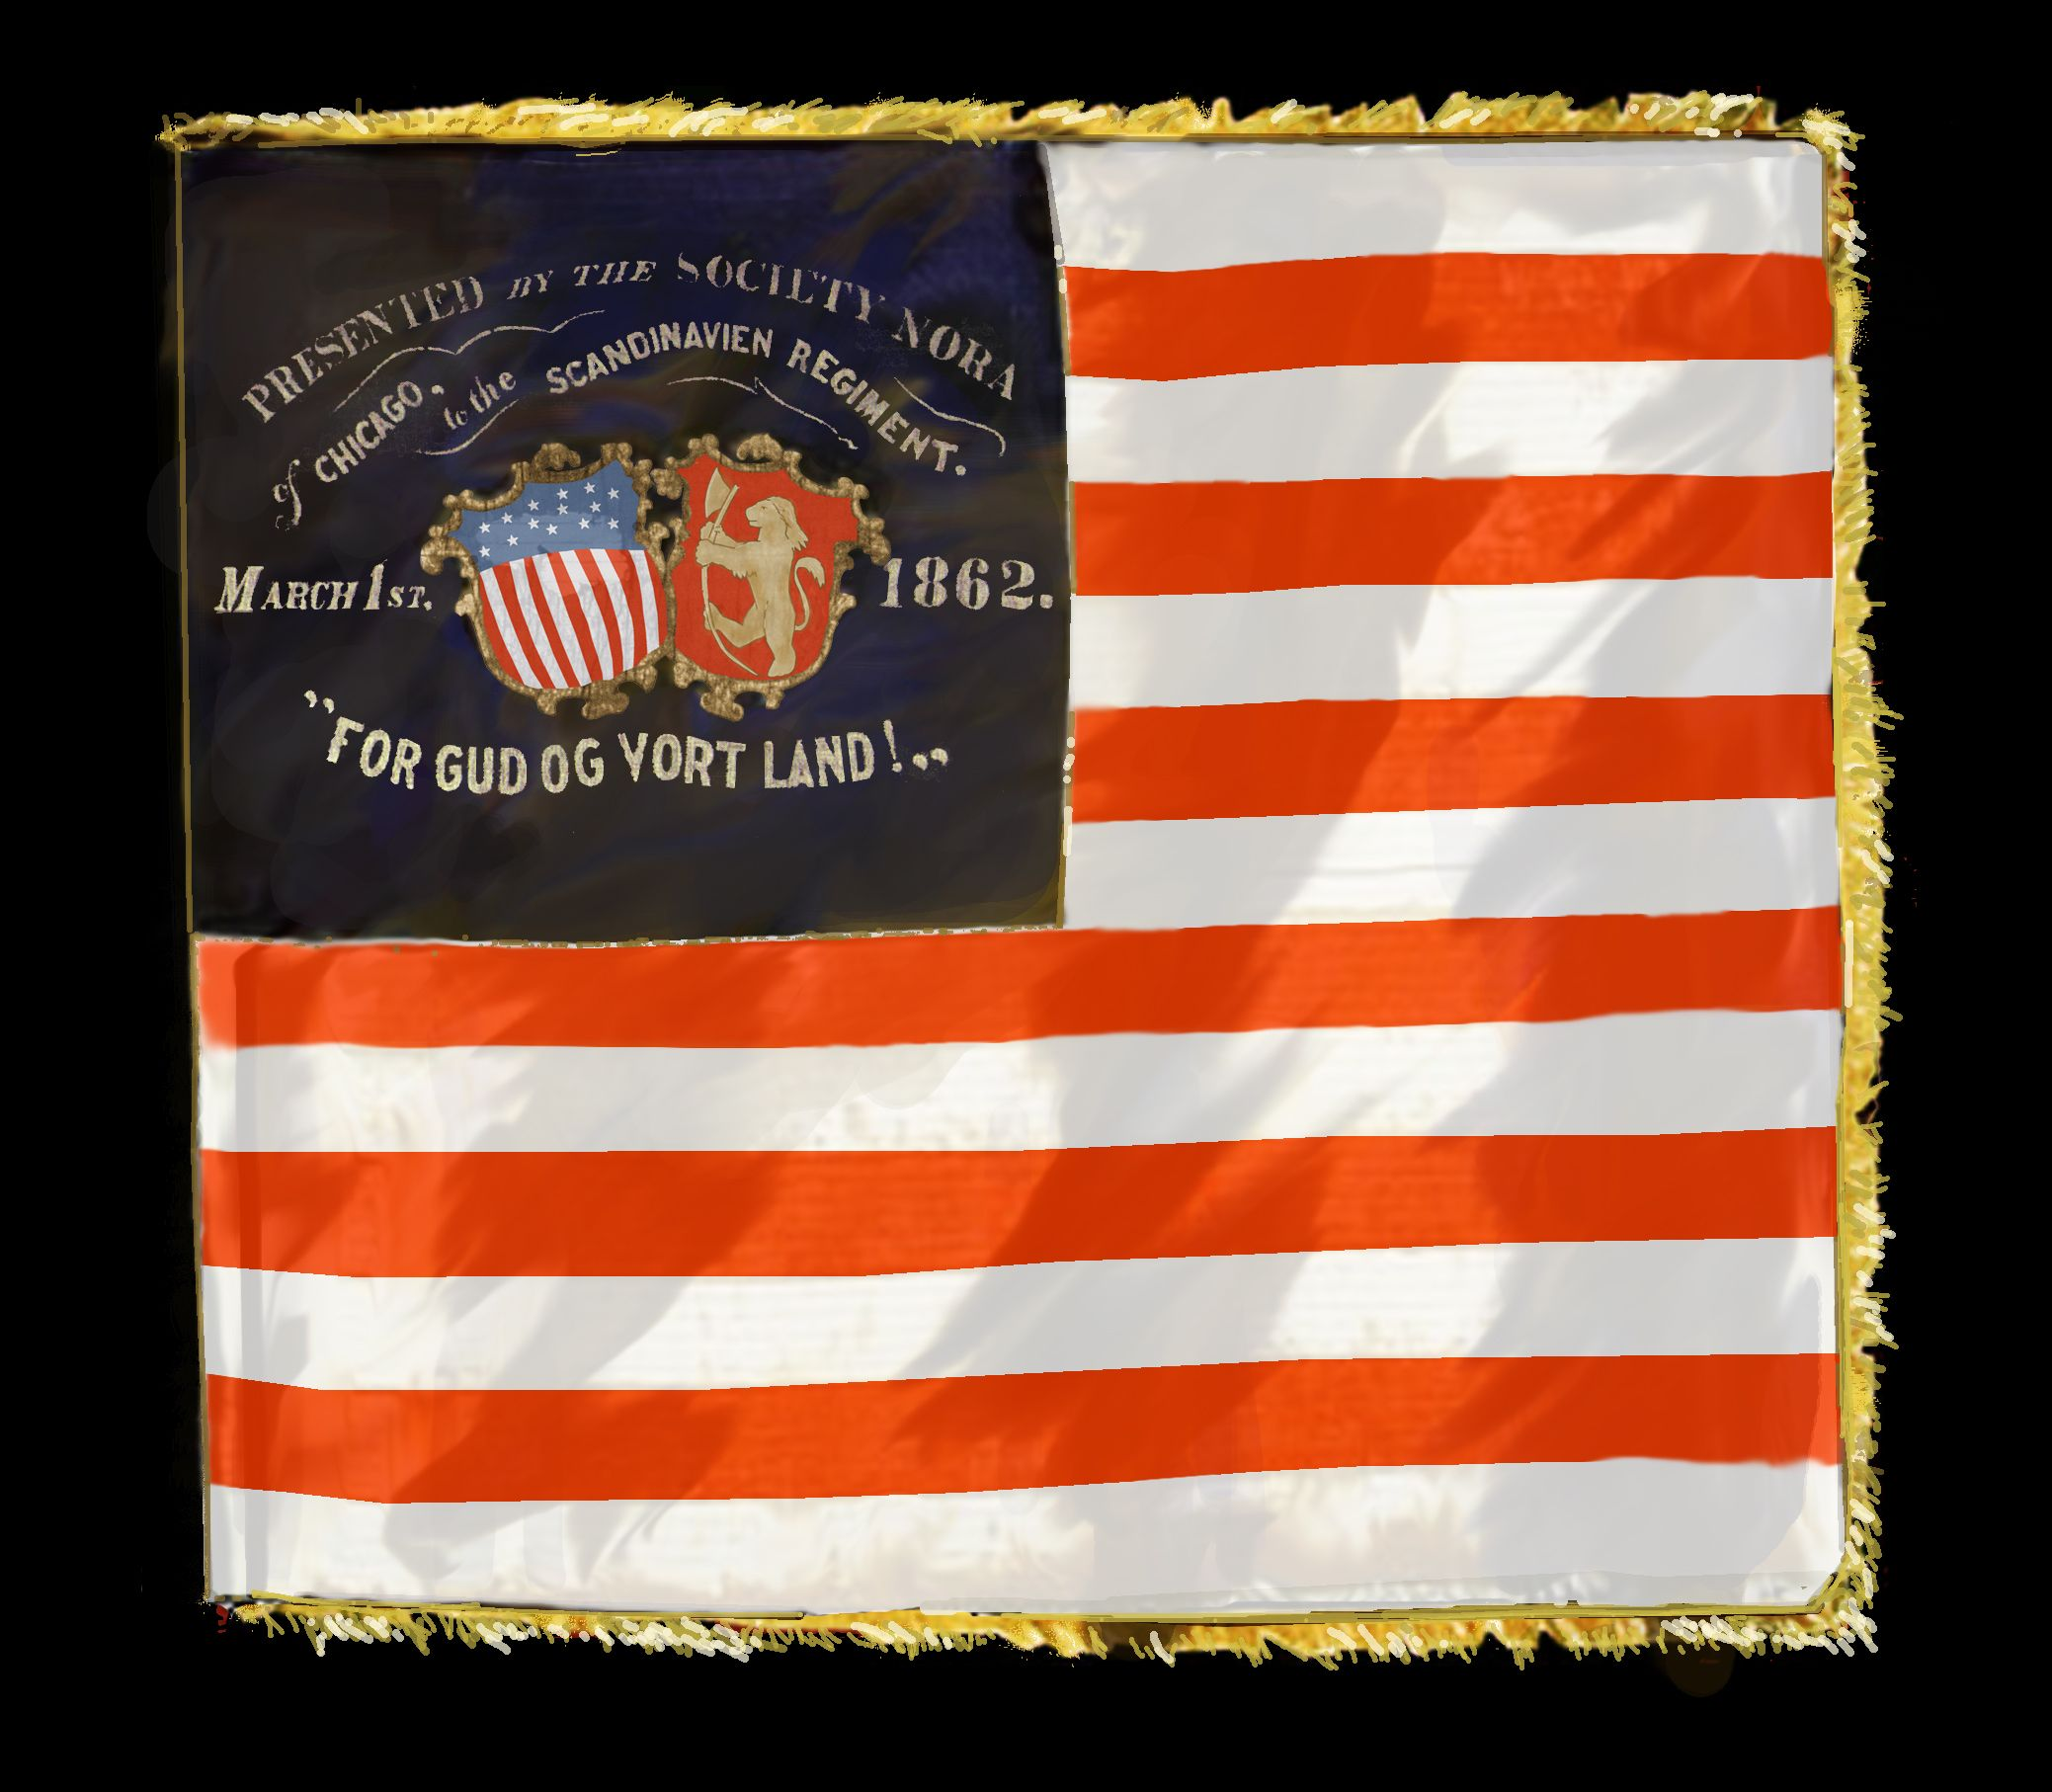 15th Wisconsin Scandinavian Regiment Flag This Flag Was Presented To The Regiment In Chicago March 2nd 1862 Civil War Flags Civil War Art Civil War History